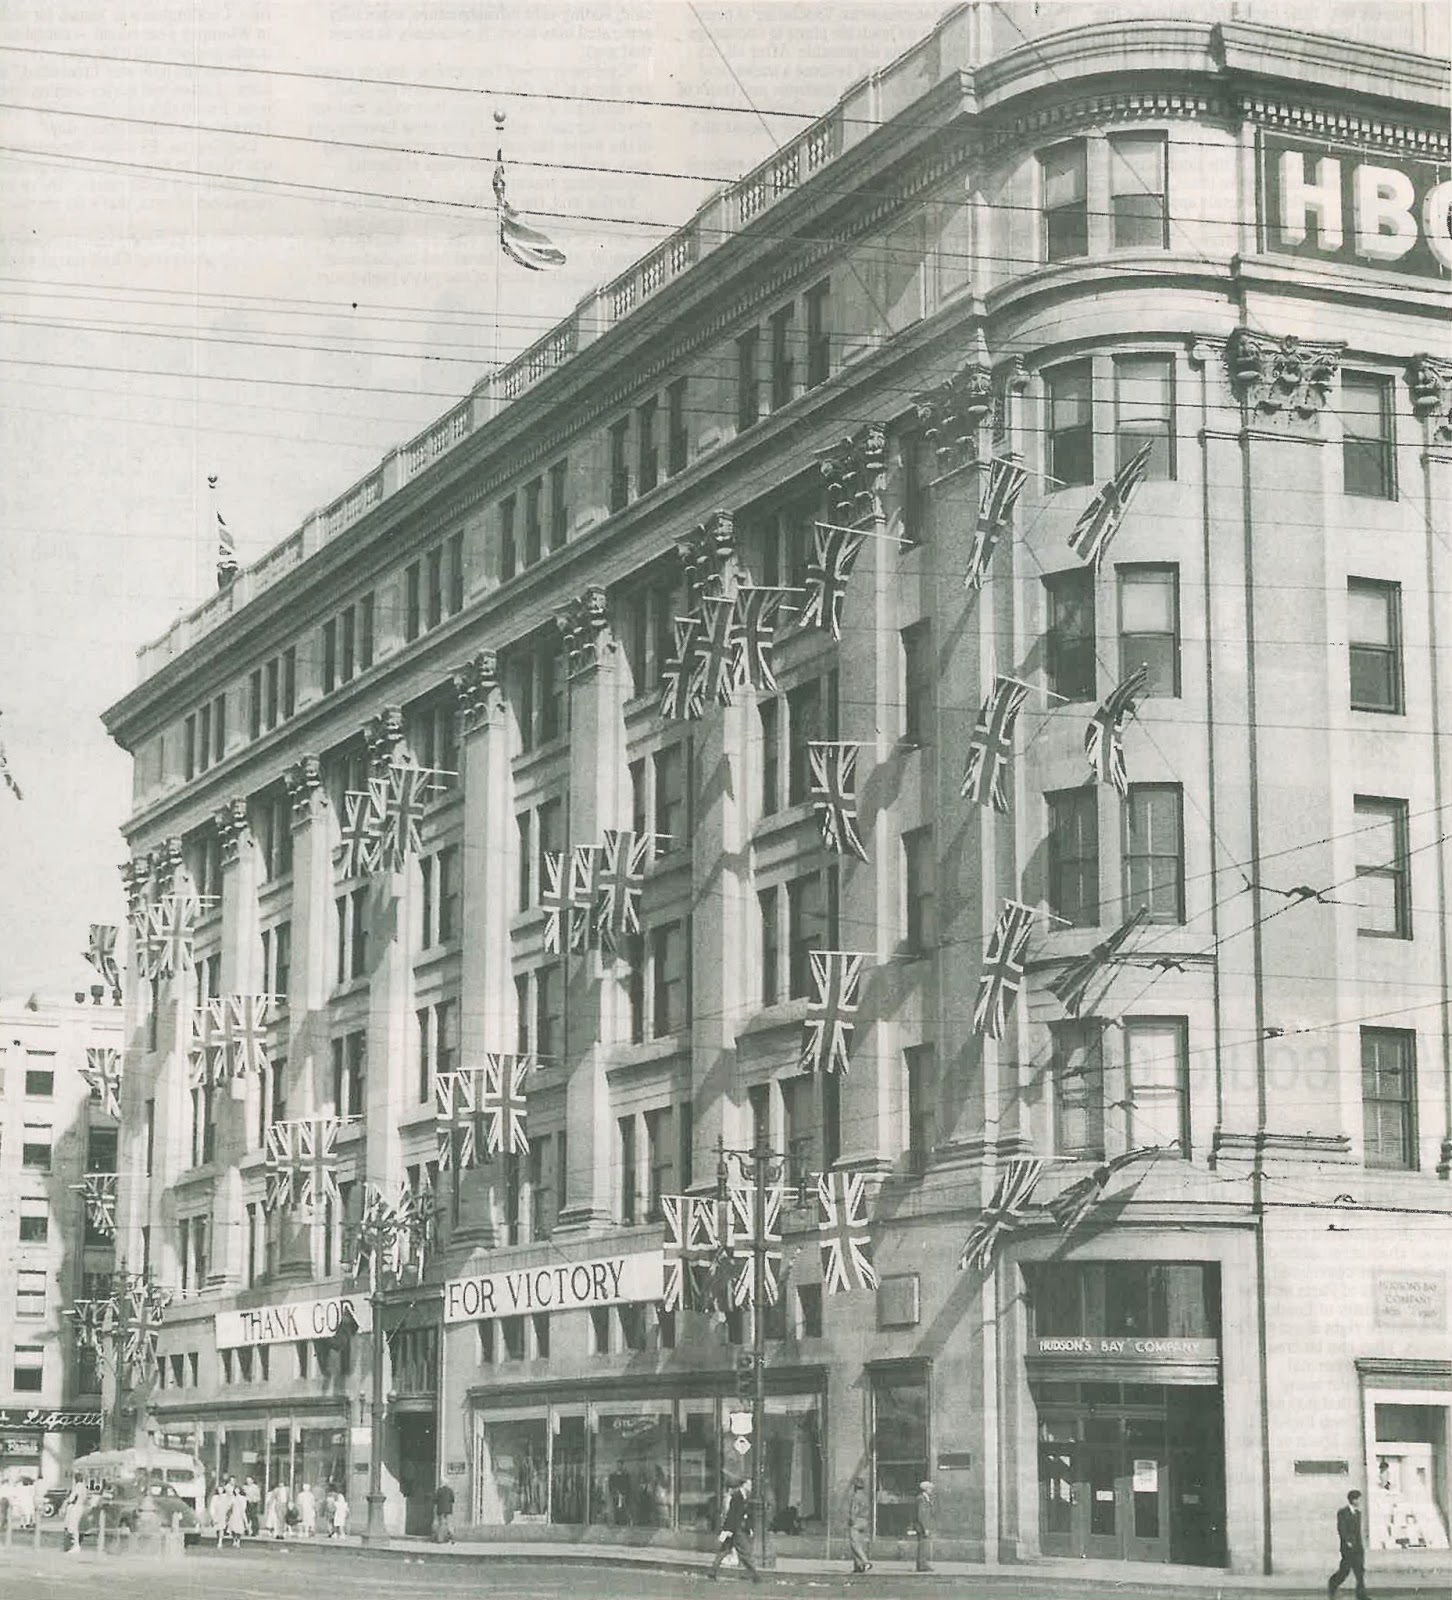 The official blog of the hudsons bay company celebrating the downtown winnipeg hudsons bay store celebrates the end of wwii image courtesy of the winnipeg free press buycottarizona Choice Image